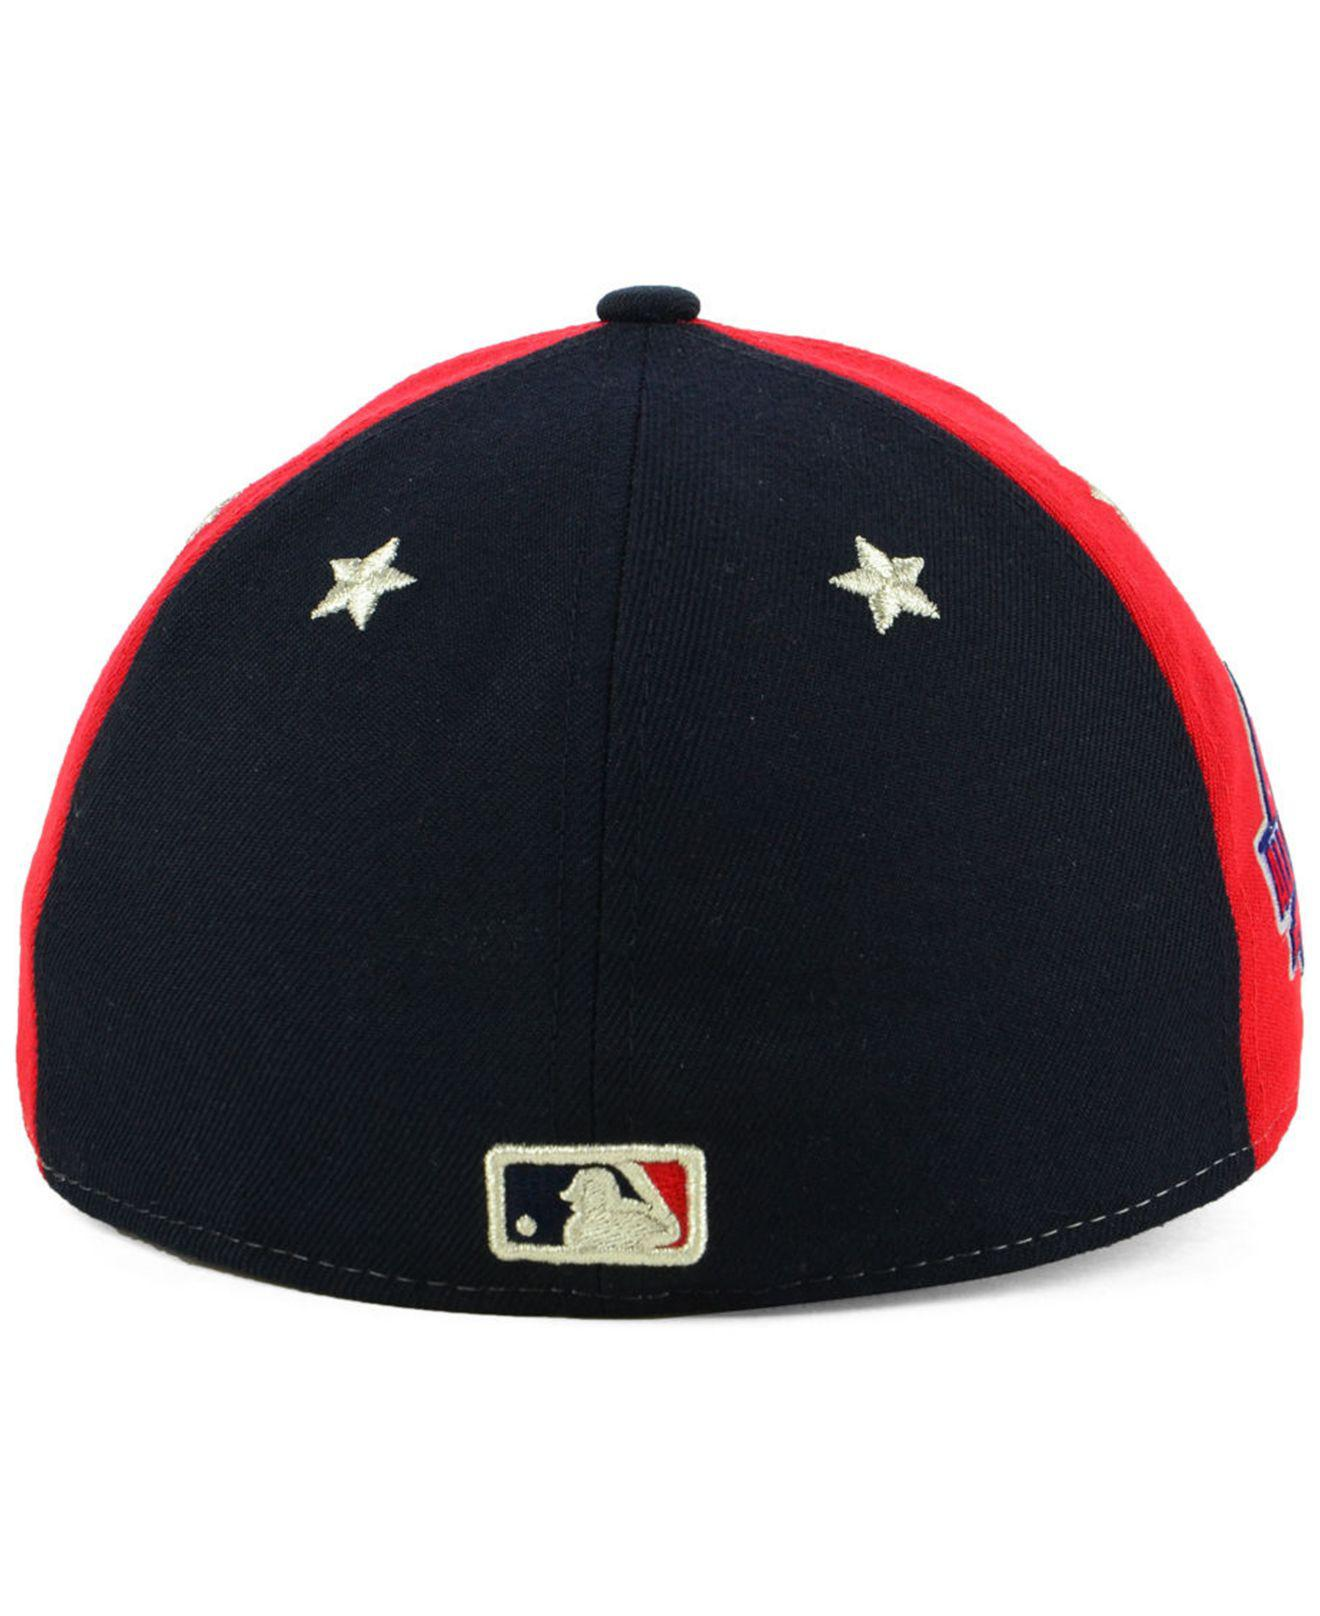 2f2e56e16756d ... coupon code for minnesota twins all star game patch low profile 59fifty  fitted cap 2018 for